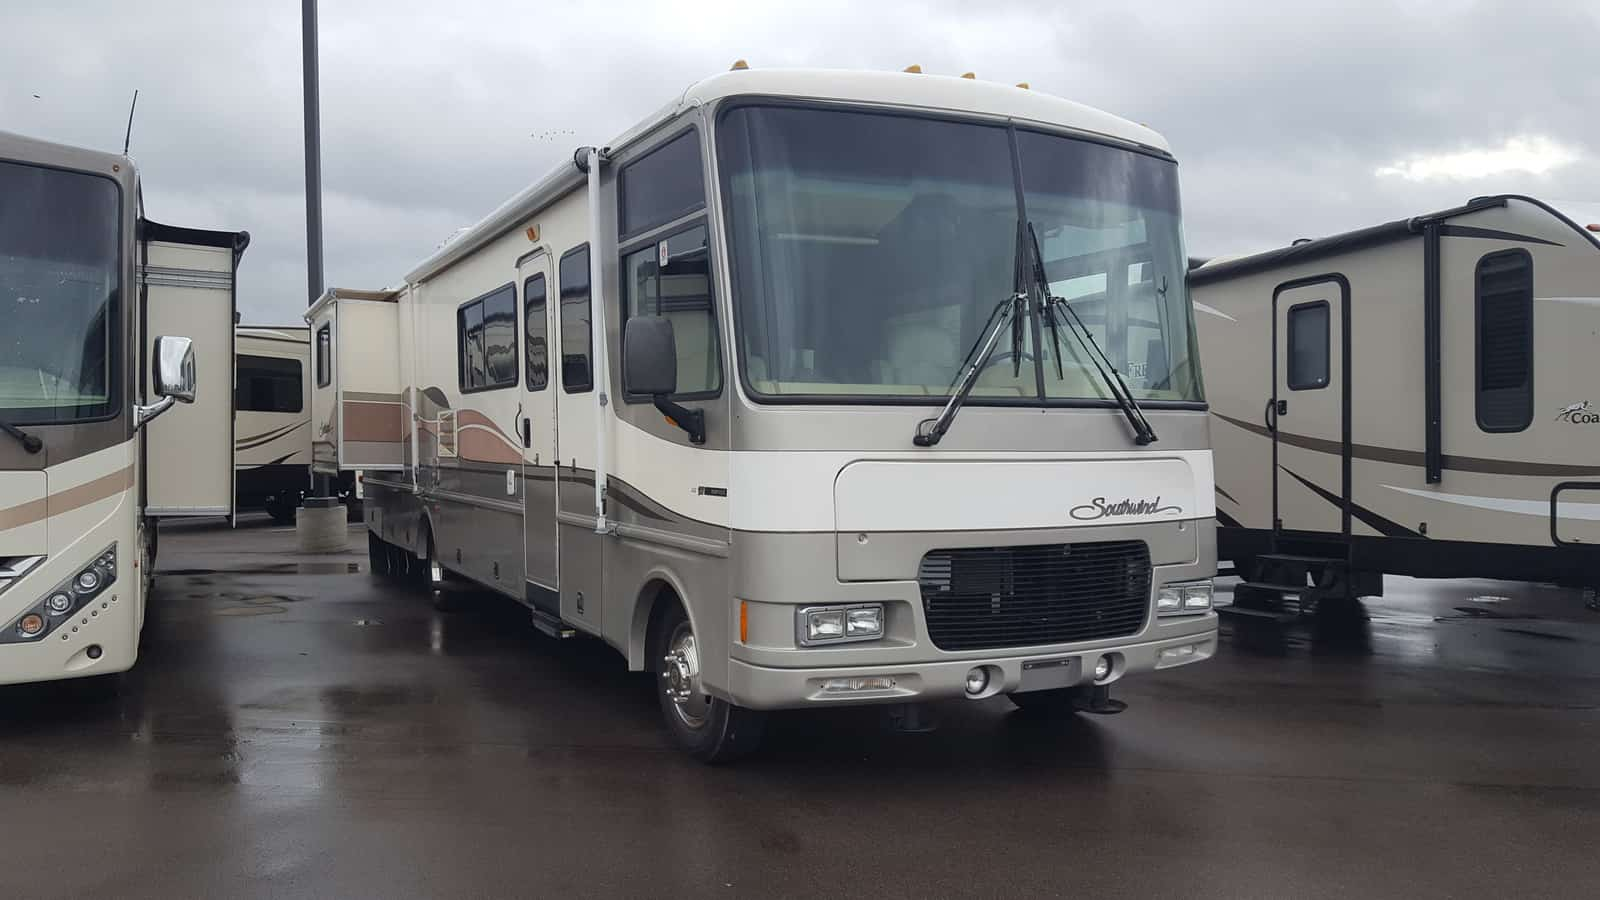 USED 1999 Fleetwood SOUTHWIND 36Z - American RV